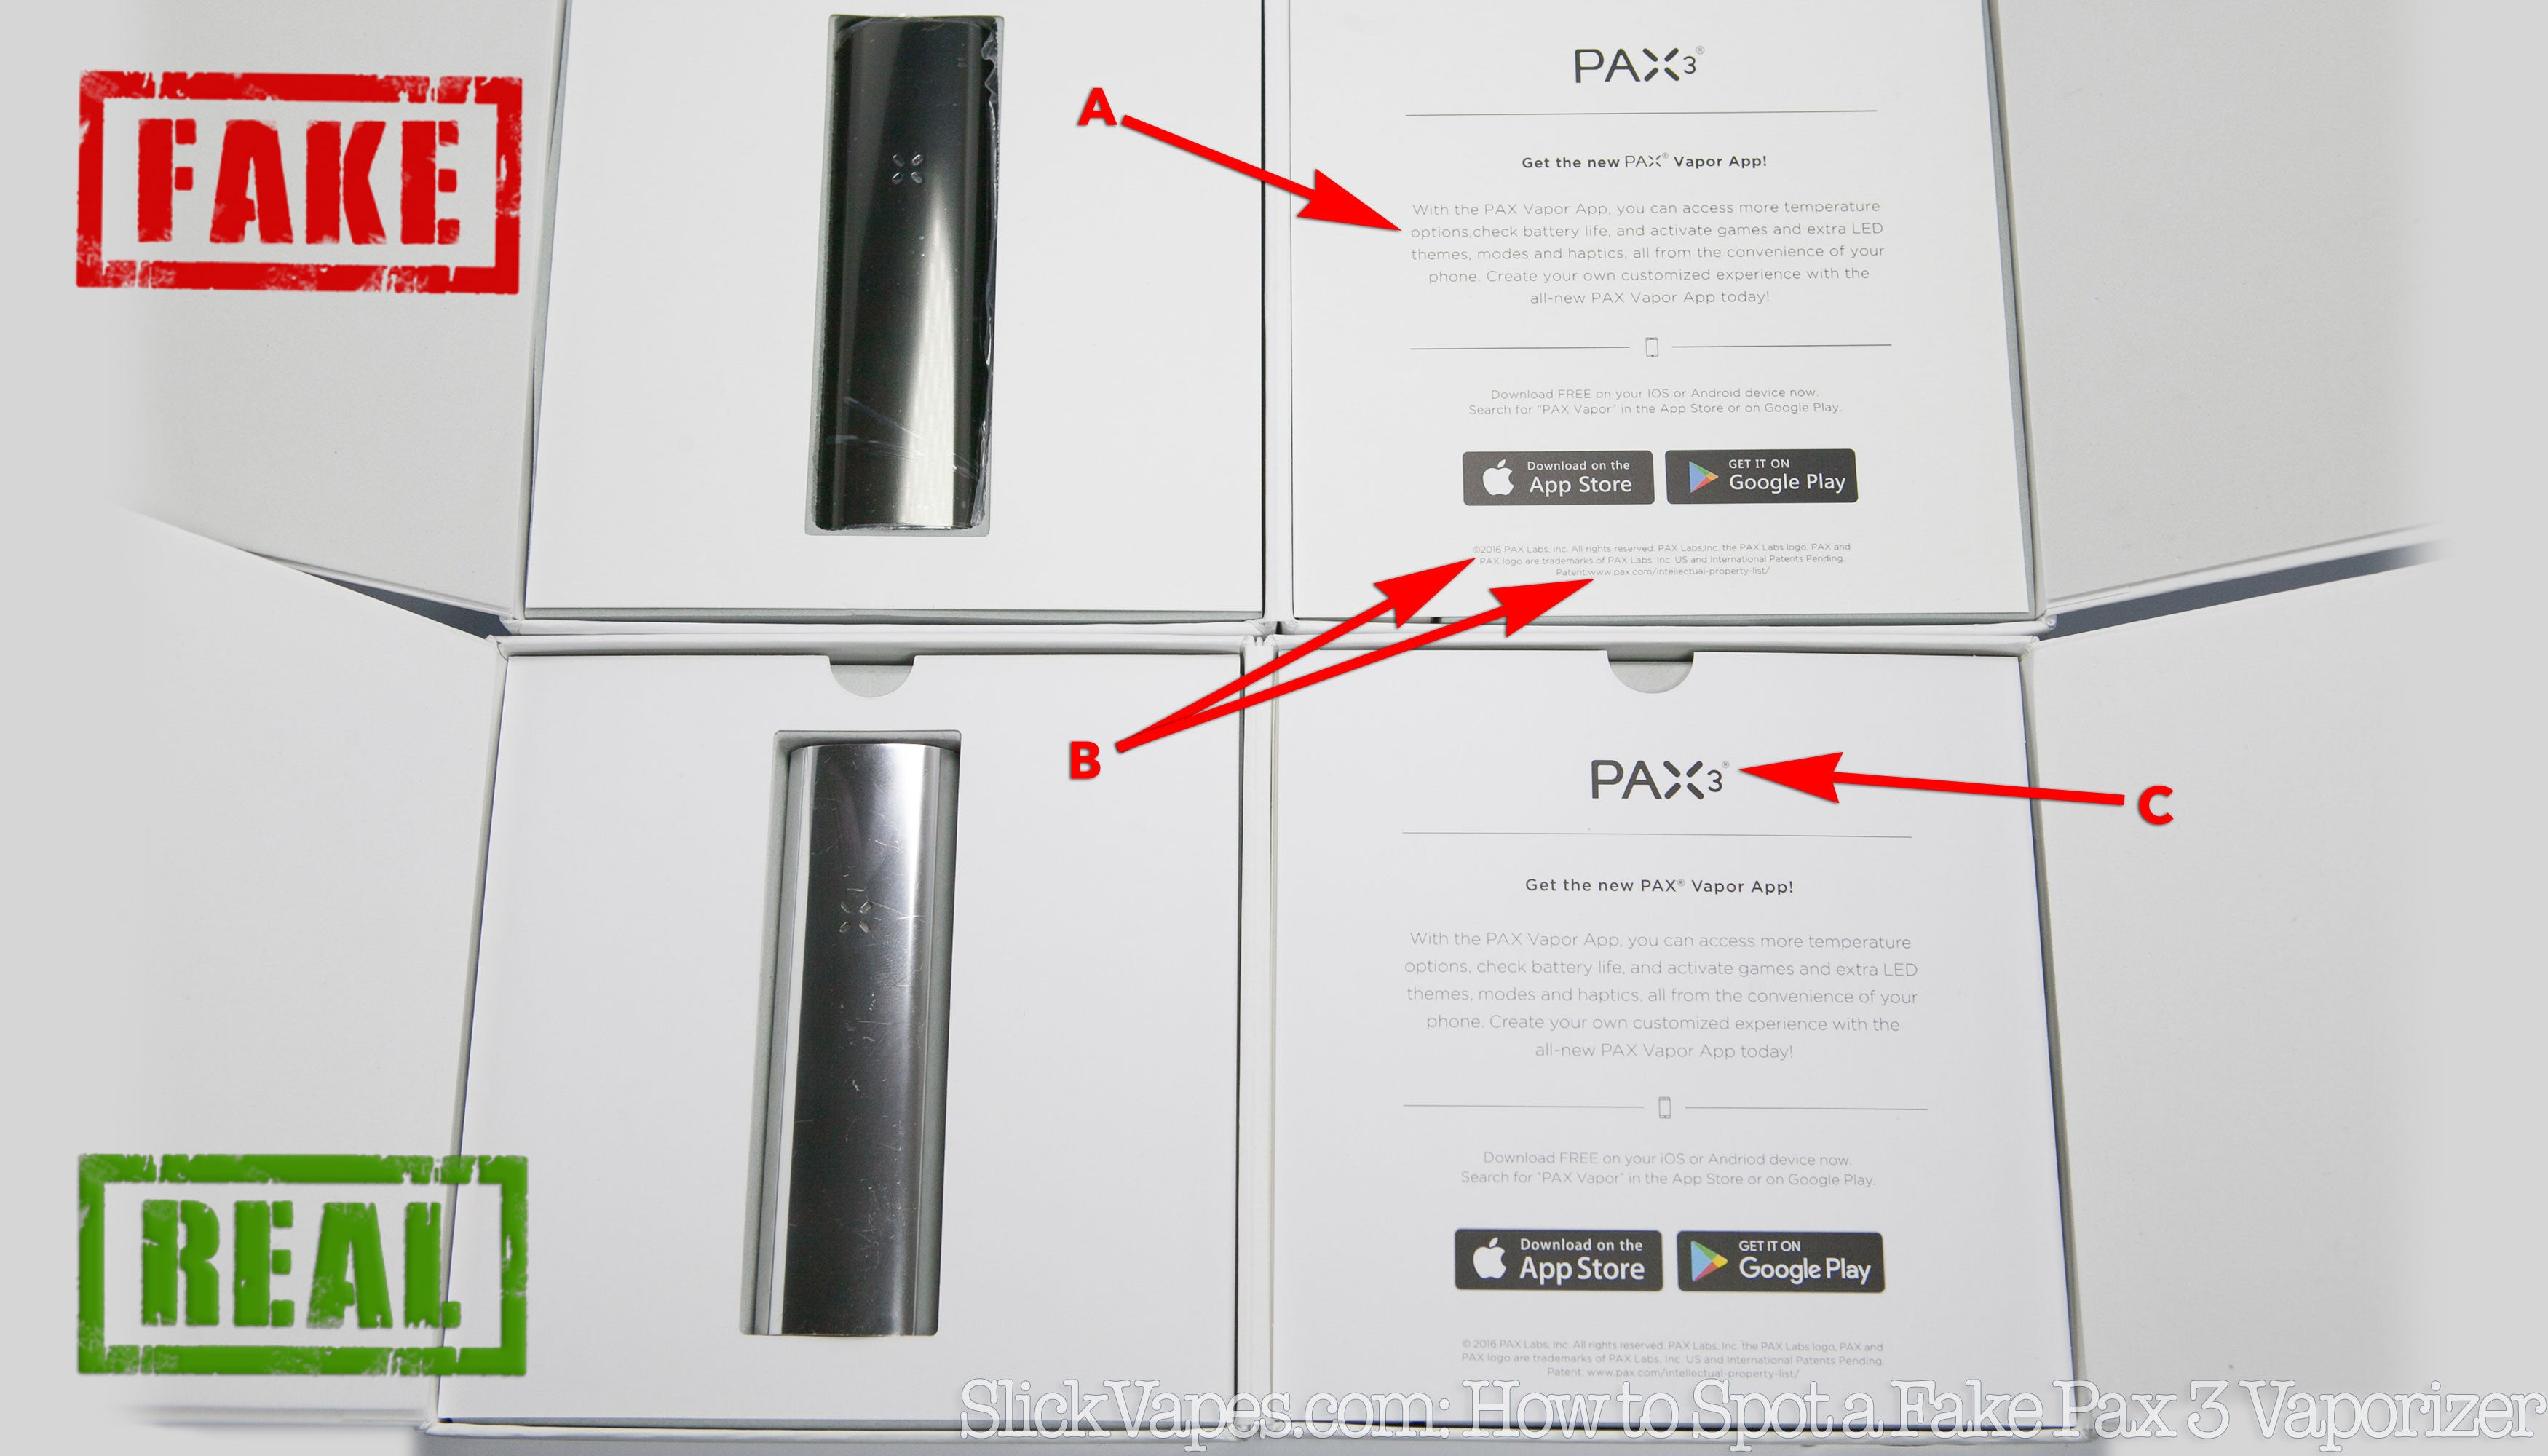 23 Ways To Spot A Fake Pax 3 Vaporizer Is My Counterfeit Enclosure For Wiring Devices Google Patents On Wire Three Way Outlet Vs Real